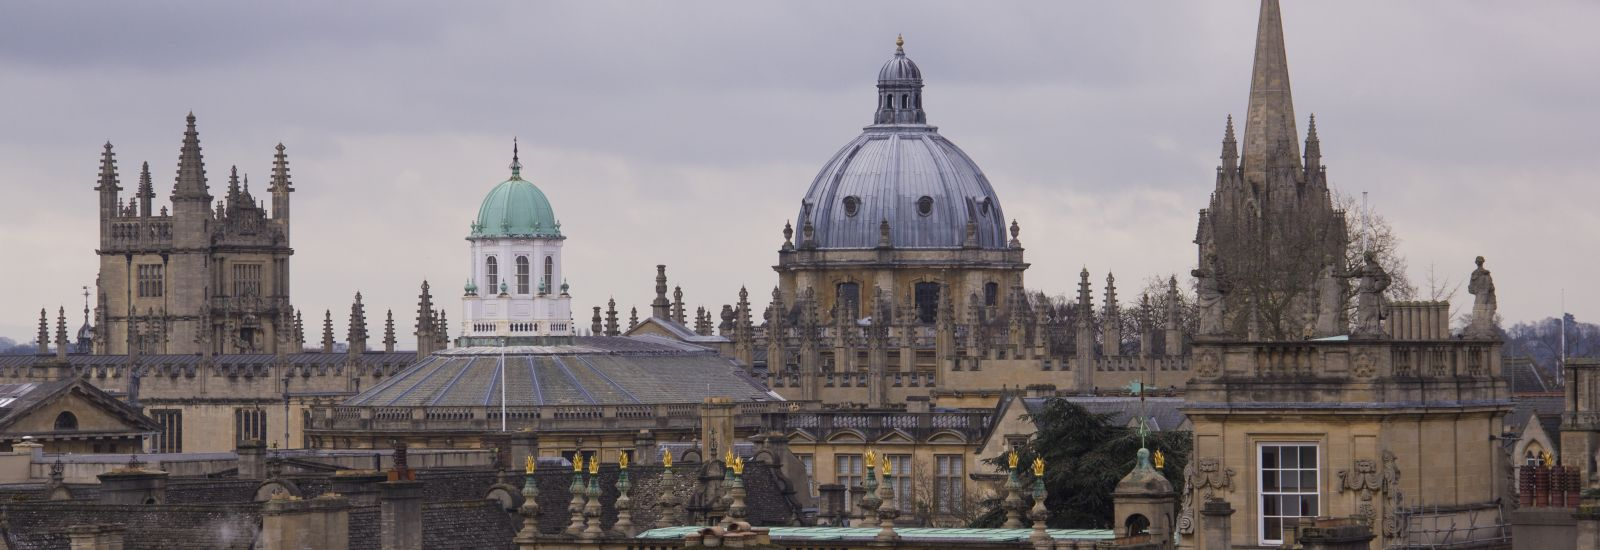 The Oxford skyline on a cloudy day